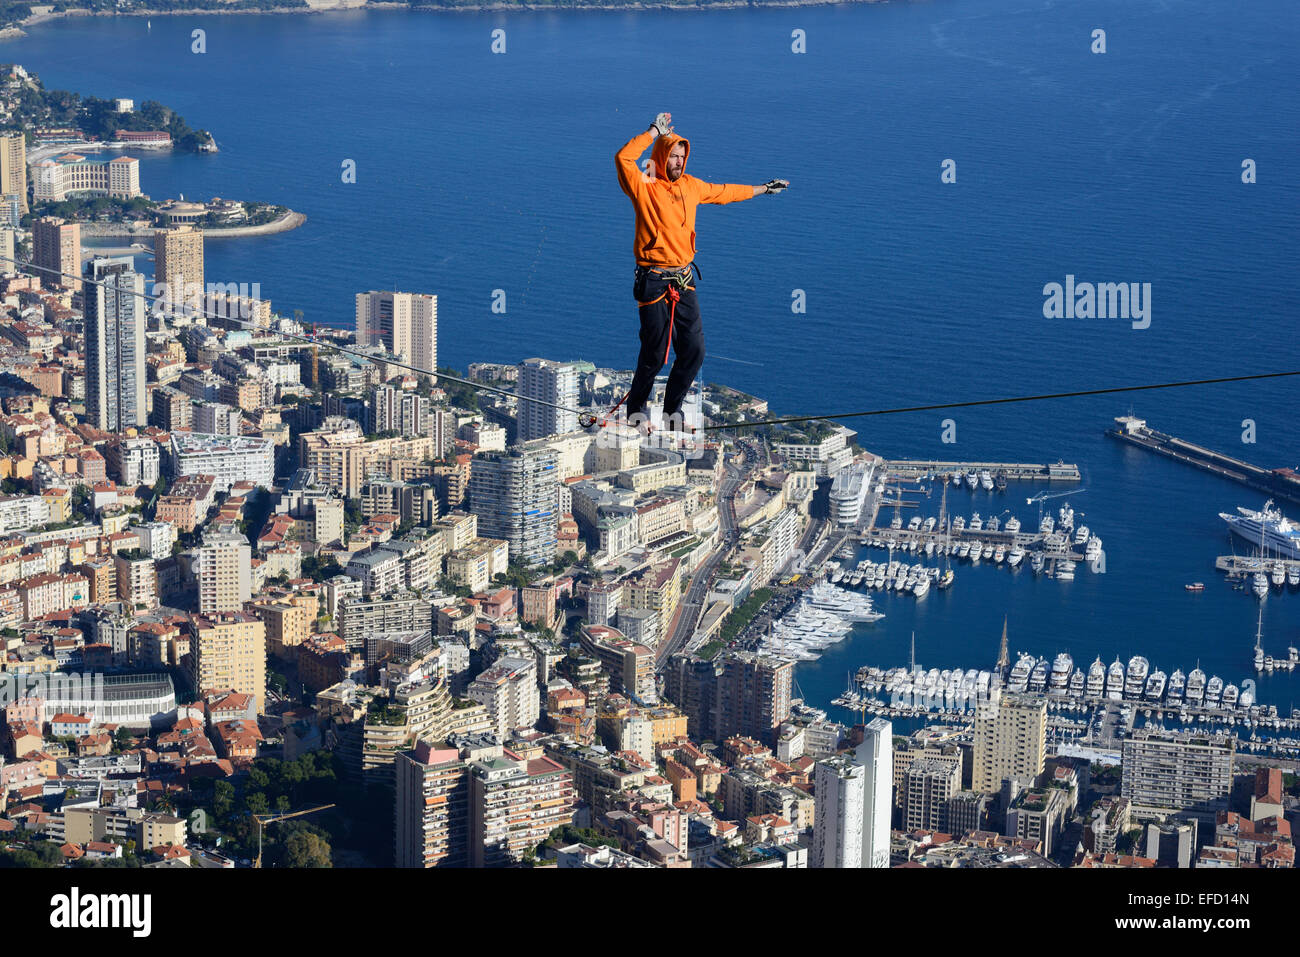 YOUNG MAN HIGHLINING (SLACKLINING) at an elevation of 550m amsl. Monte-Carlo District in the Principality of Monaco - Stock Image